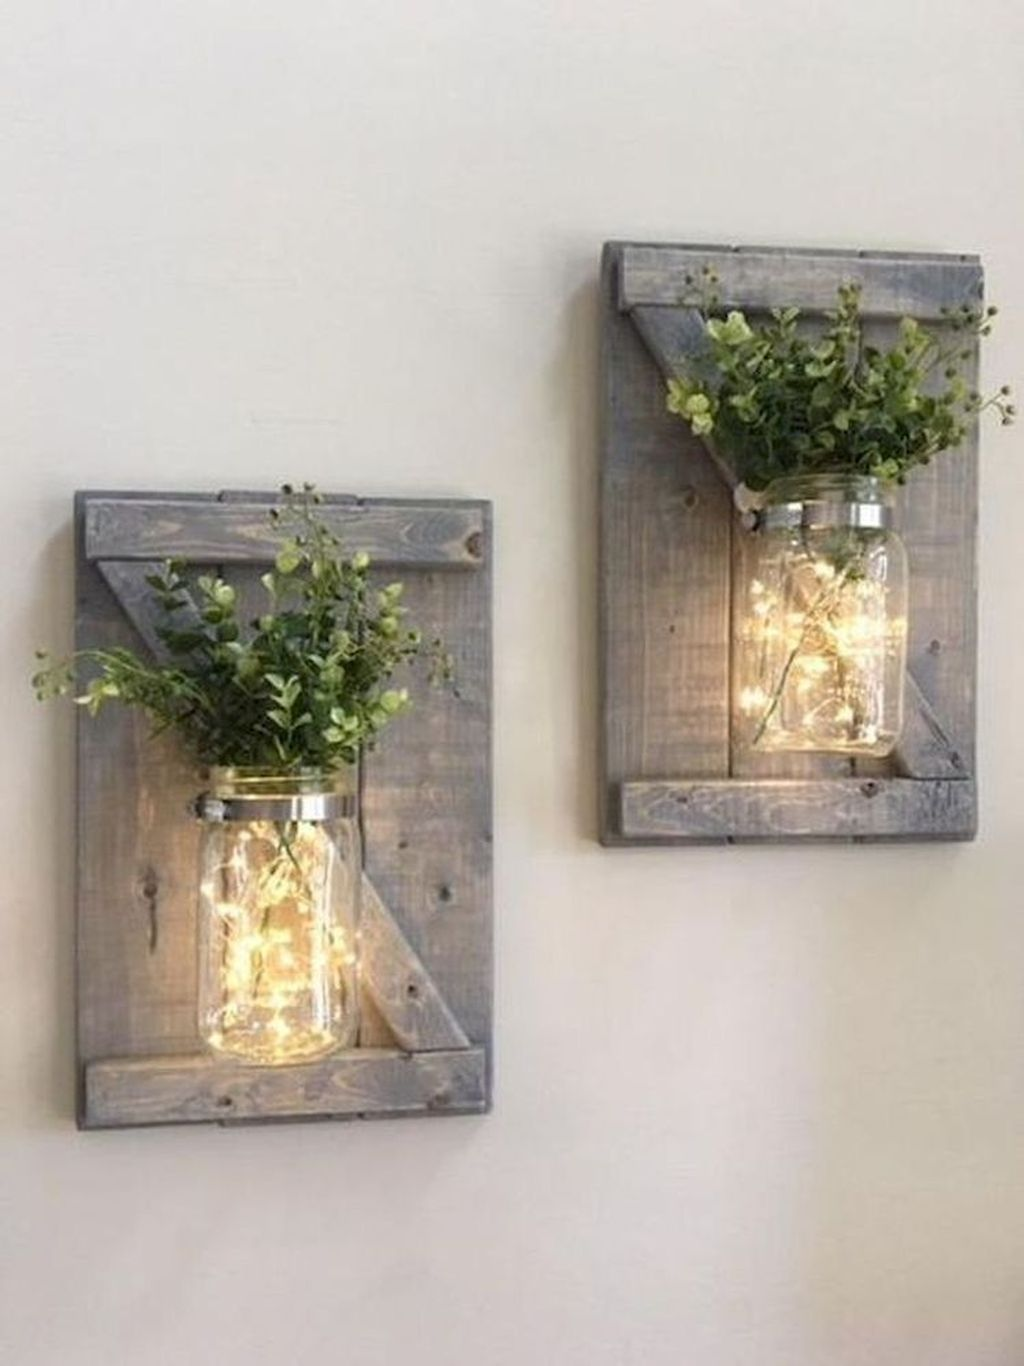 39 Inspiring Outdoor Wall Decor Ideas For Best Home To Try Right Now In 2020 Christmas Wall Decor Diy Diy Wall Art Christmas Wall Decor